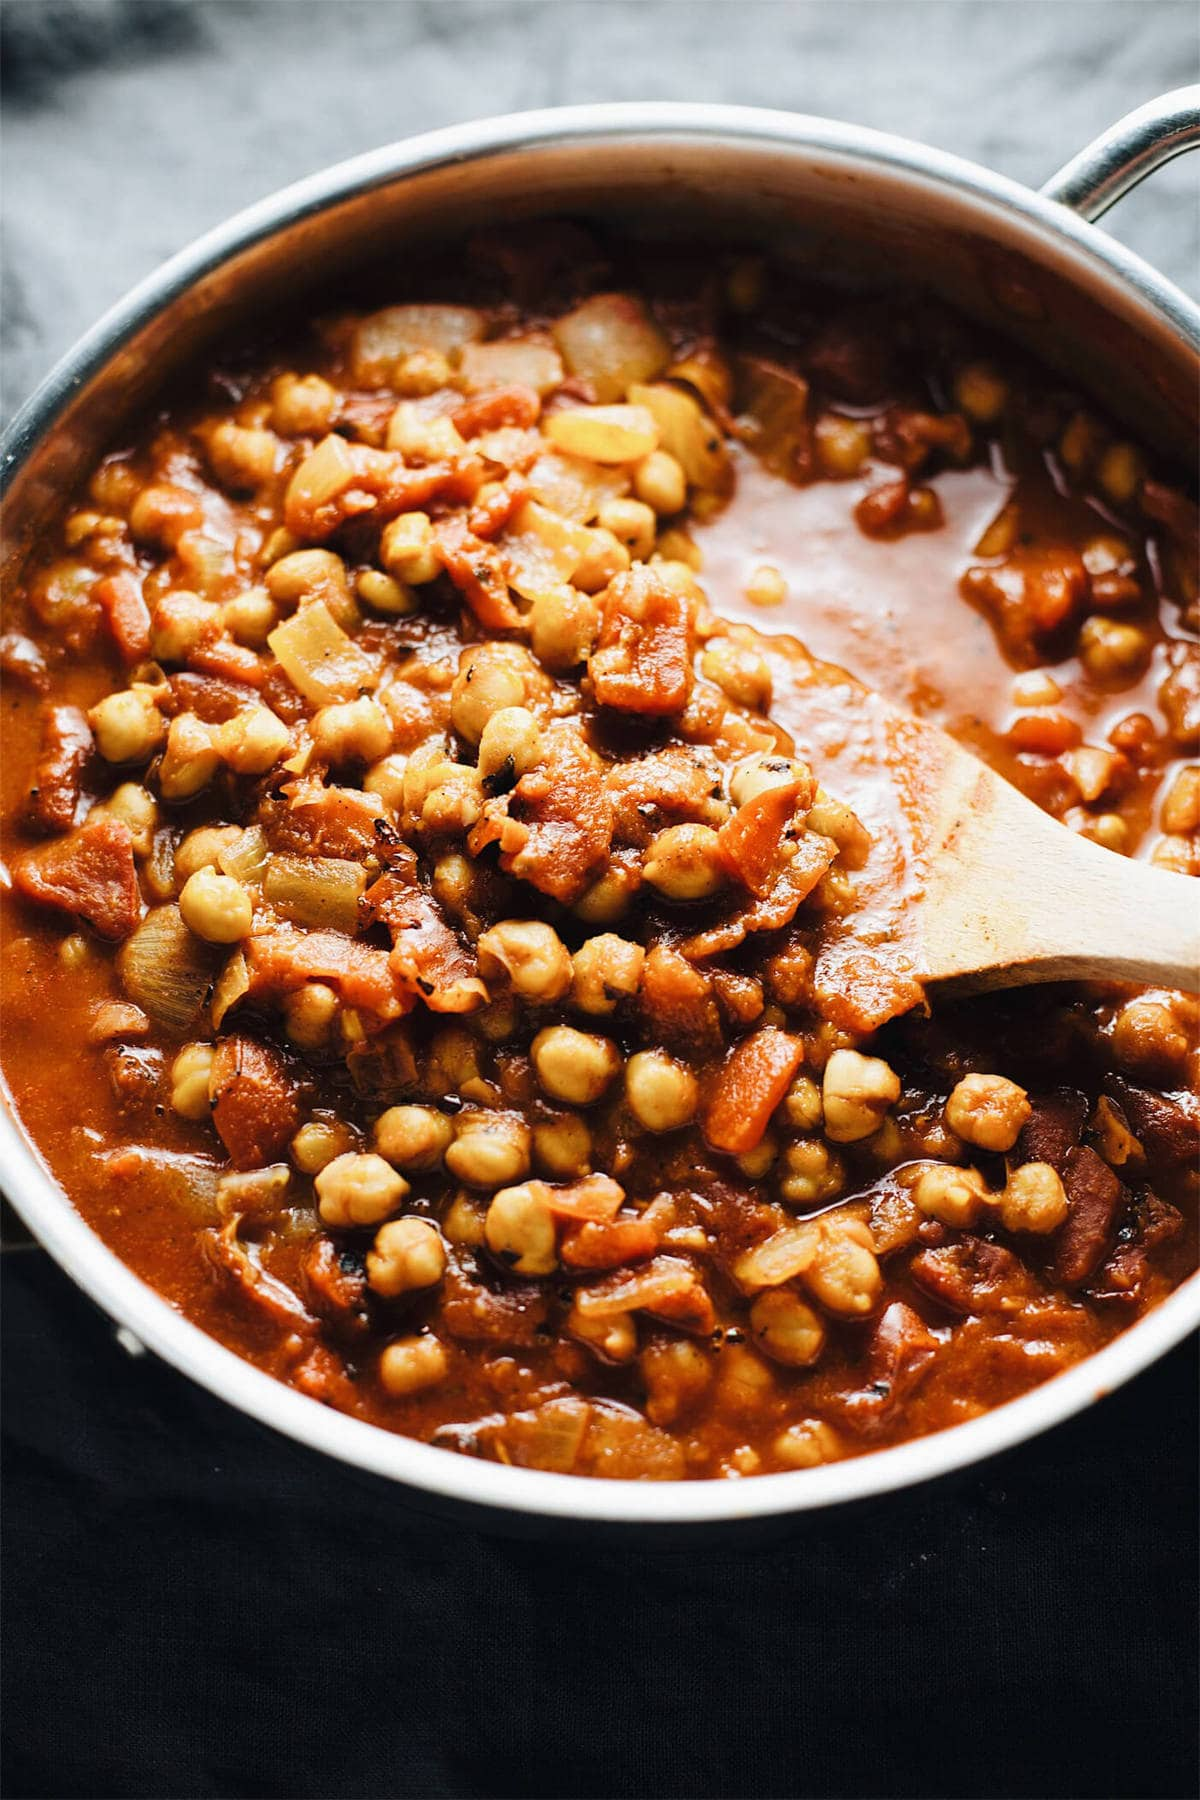 a pan of moroccan chickpea stew with a wooden spoon in it.